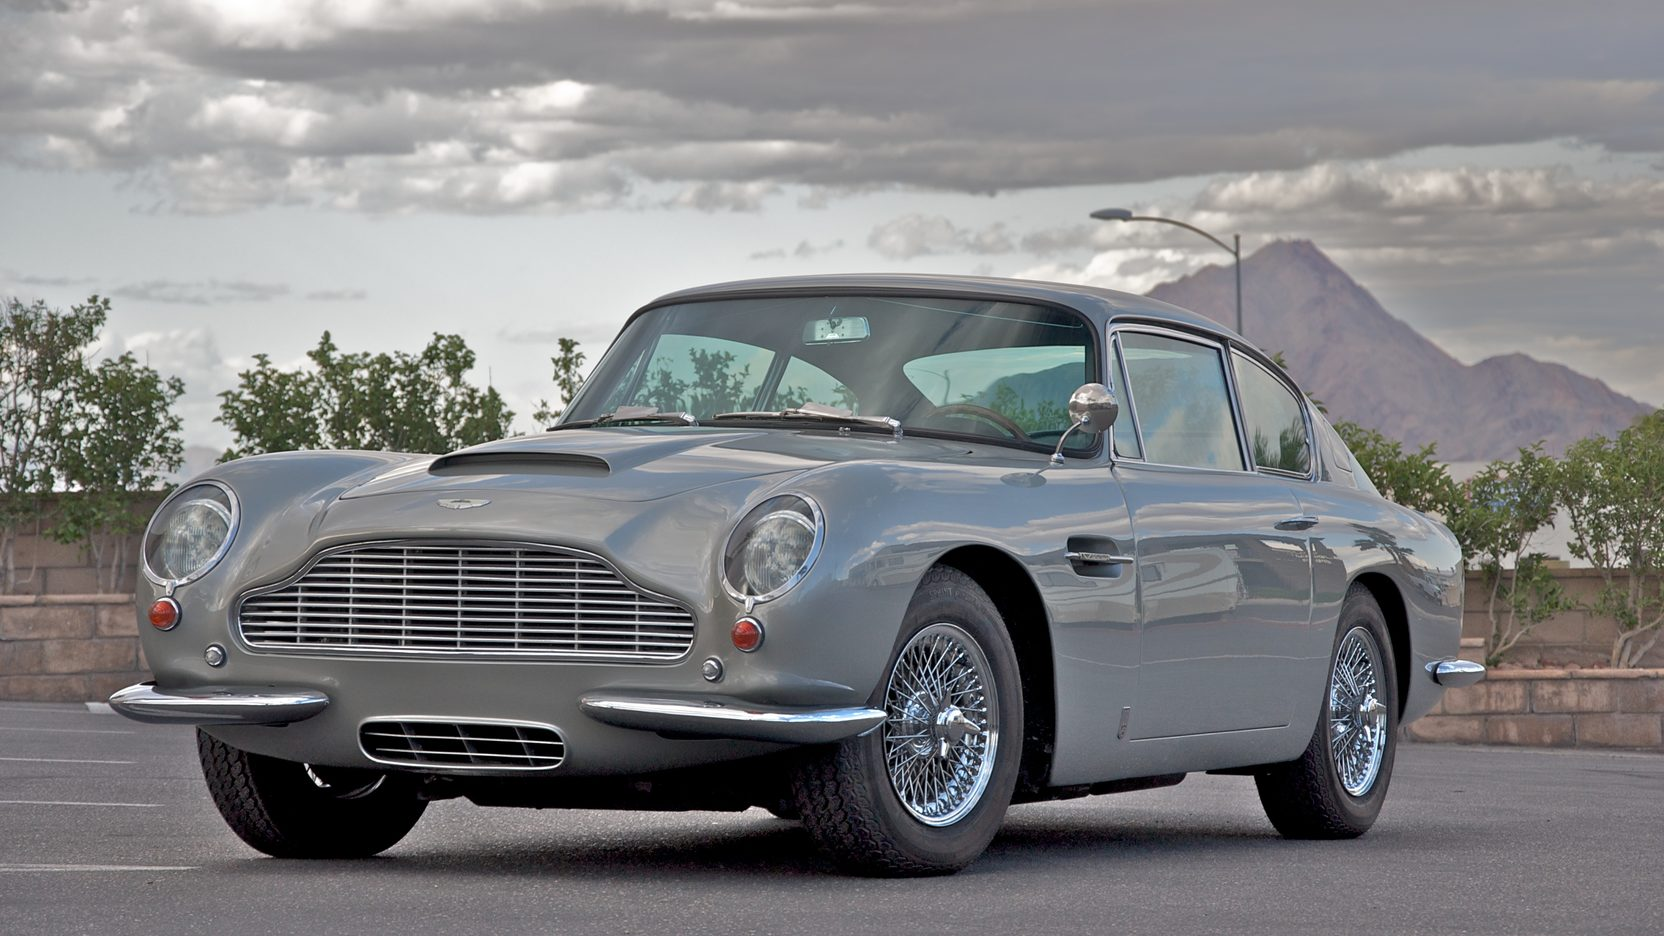 Aston Martin Db6 Wallpapers Vehicles Hq Aston Martin Db6 Pictures 4k Wallpapers 2019